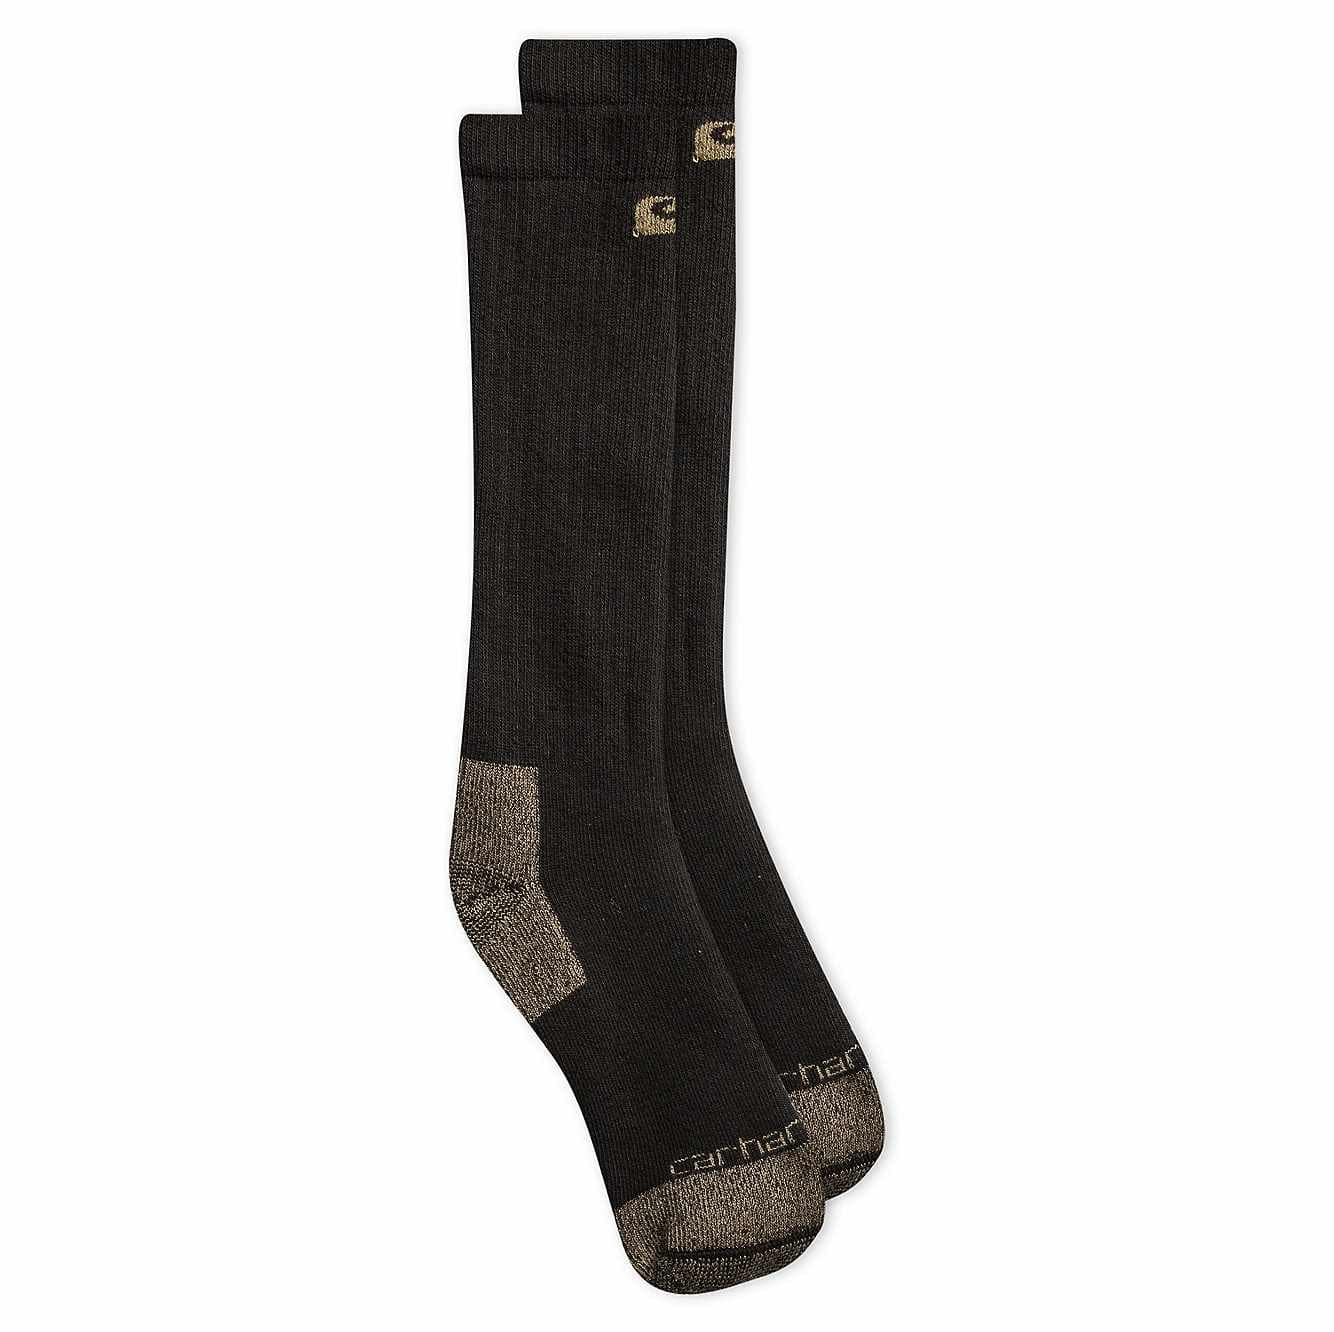 Picture of Full Cushion Steel-Toe Cotton Work Boot Sock 2 Pack in Black